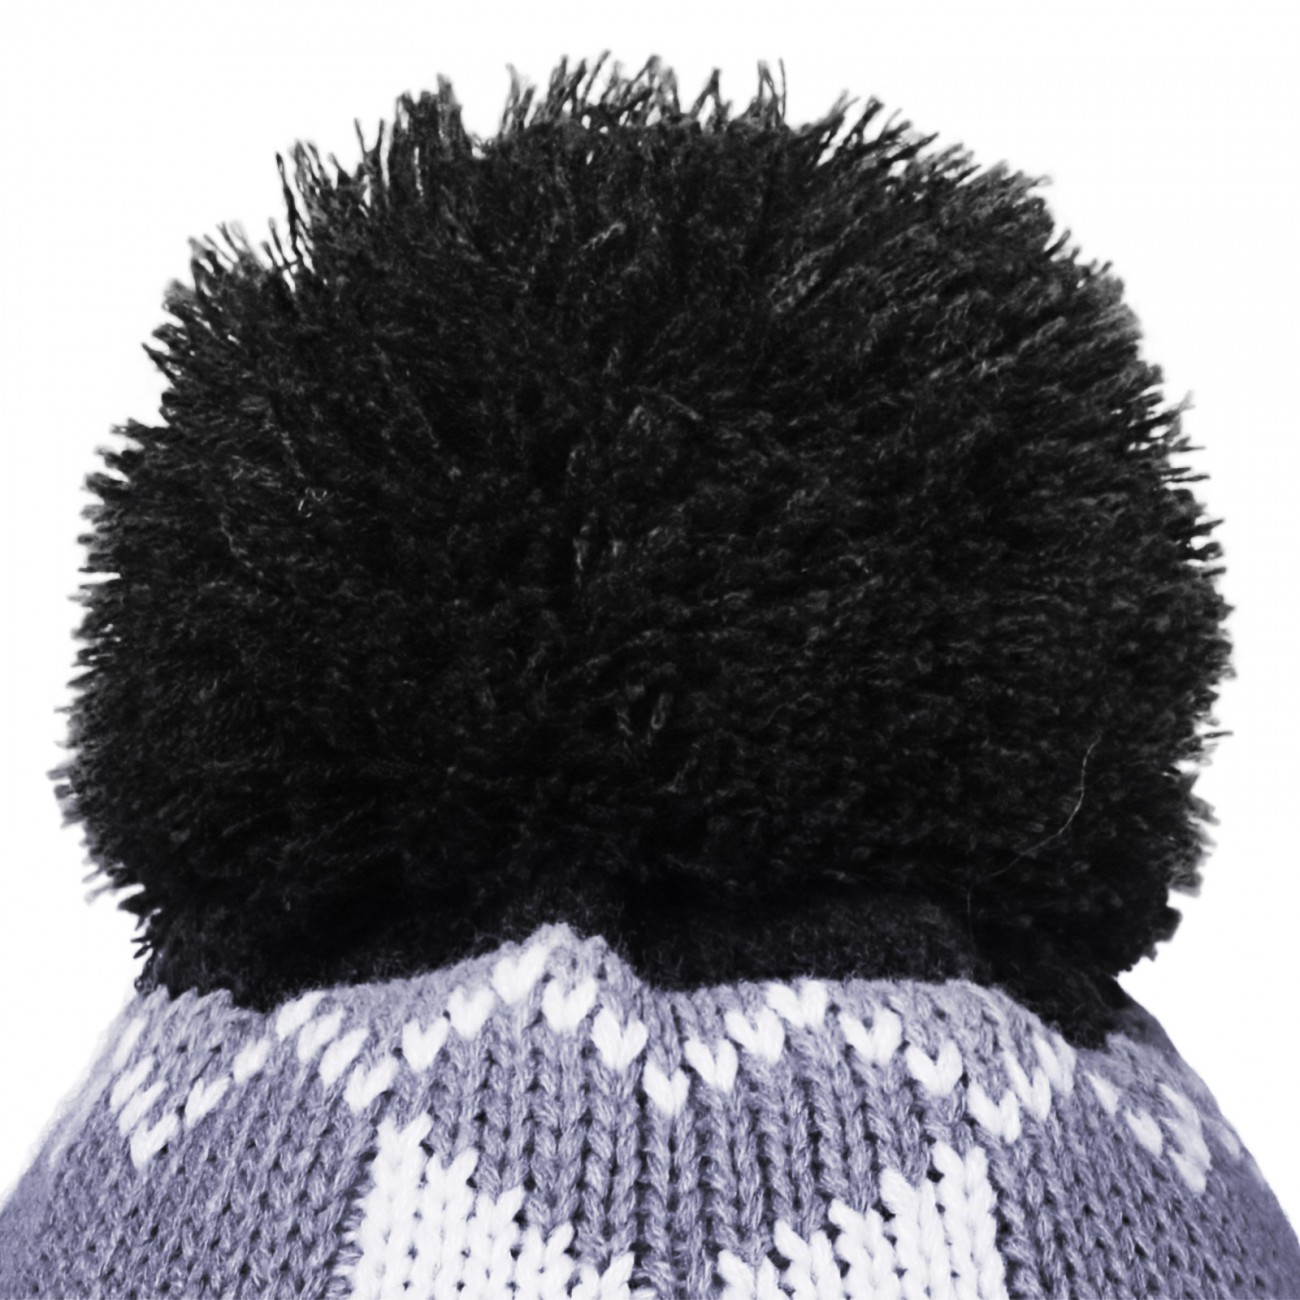 Knitting Pattern For Womens Bobble Hat : CASPAR Womens Winter Knitted Ski Hat Chunky Bobble with Pattern - many colour...